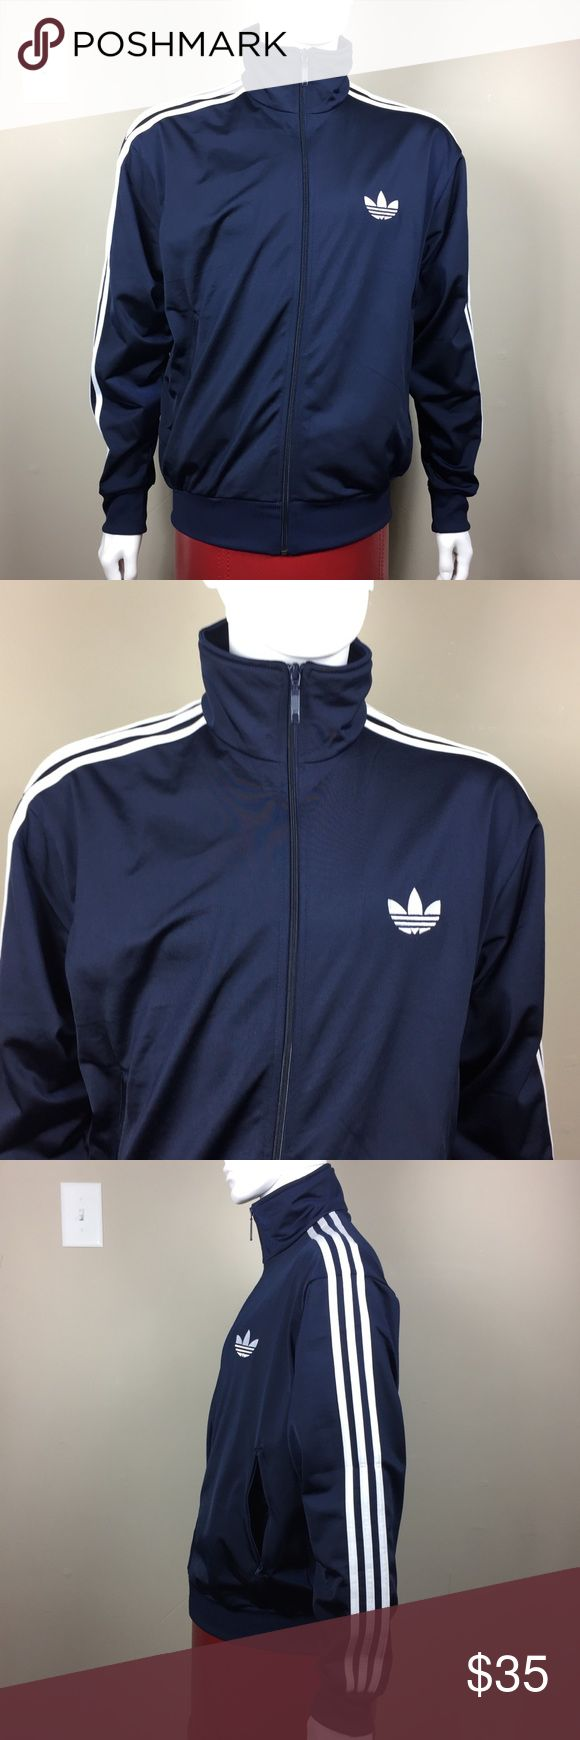 Men's large adidas jacket navy blue & white stripe This is an authentic adidas jacket. Men's size large. It is made of 100% polyester and is in perfect condition.!l it is a navy blue color with a white adidas logo on the chest, and white stripes going down the arms. adidas Jackets & Coats Performance Jackets